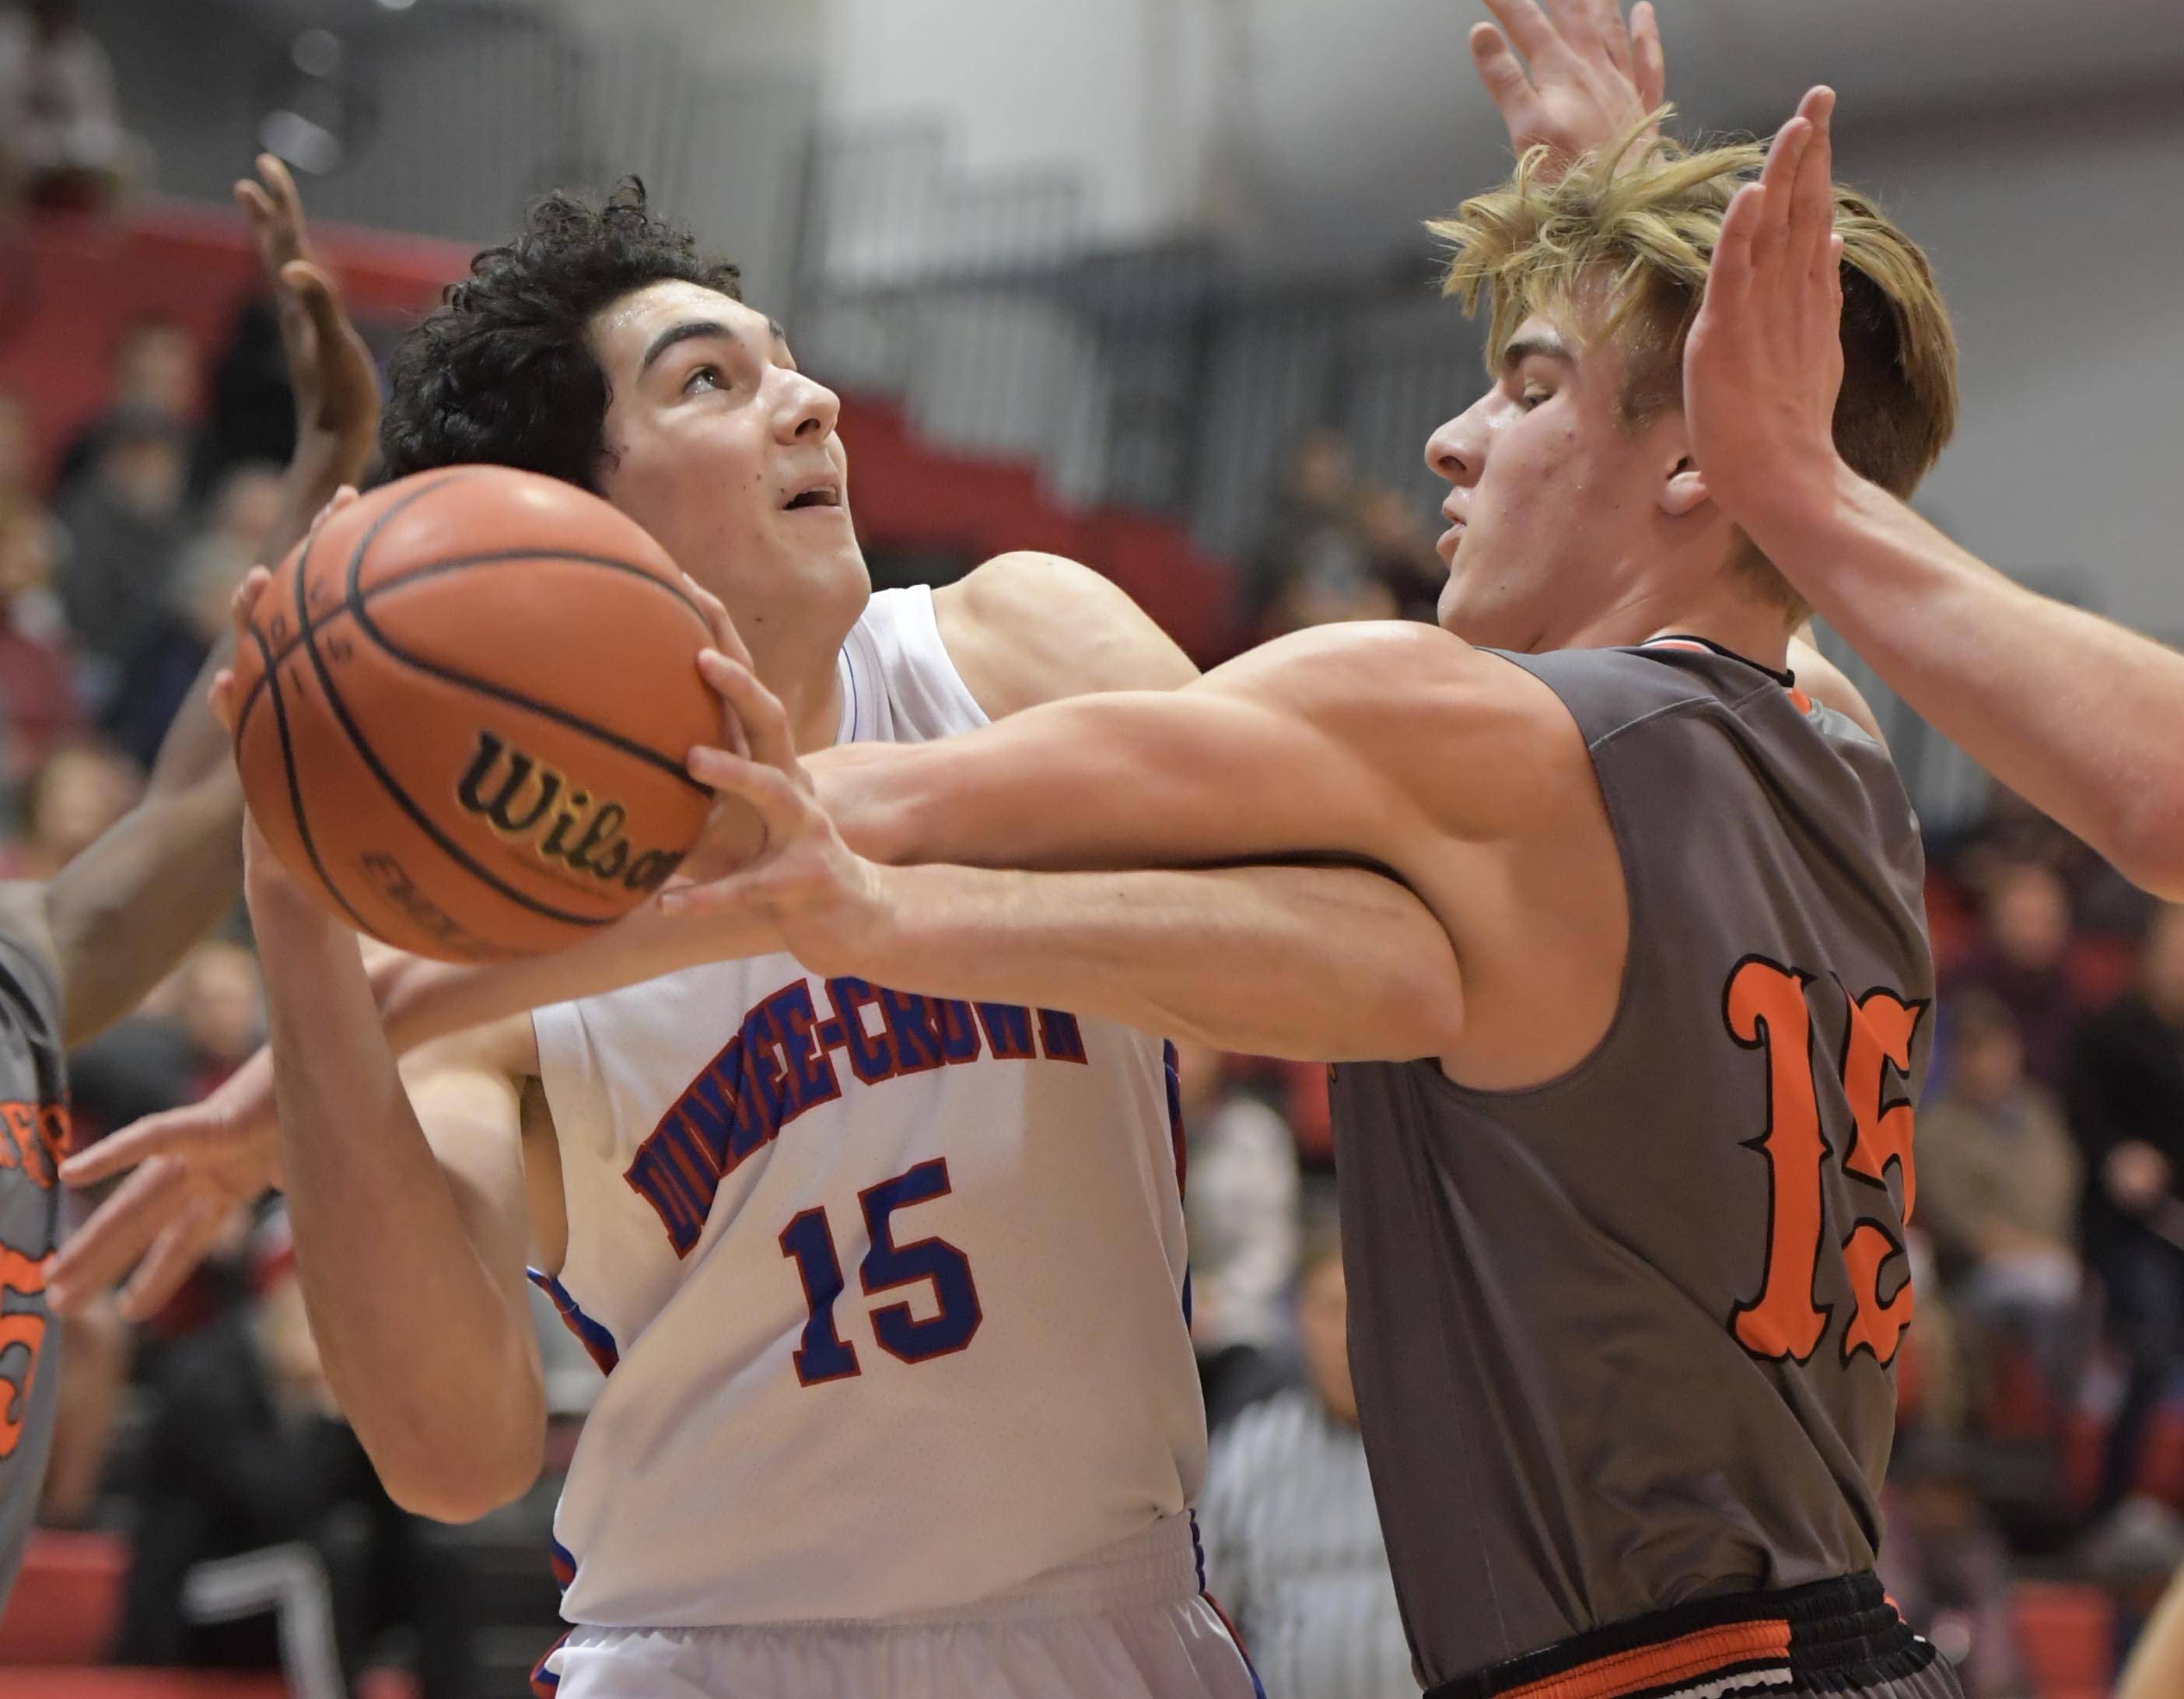 Dundee-Crown's Gabriel Bergeron is fouled by McHenry's Matt Ezop Wednesday at Carpentersville.